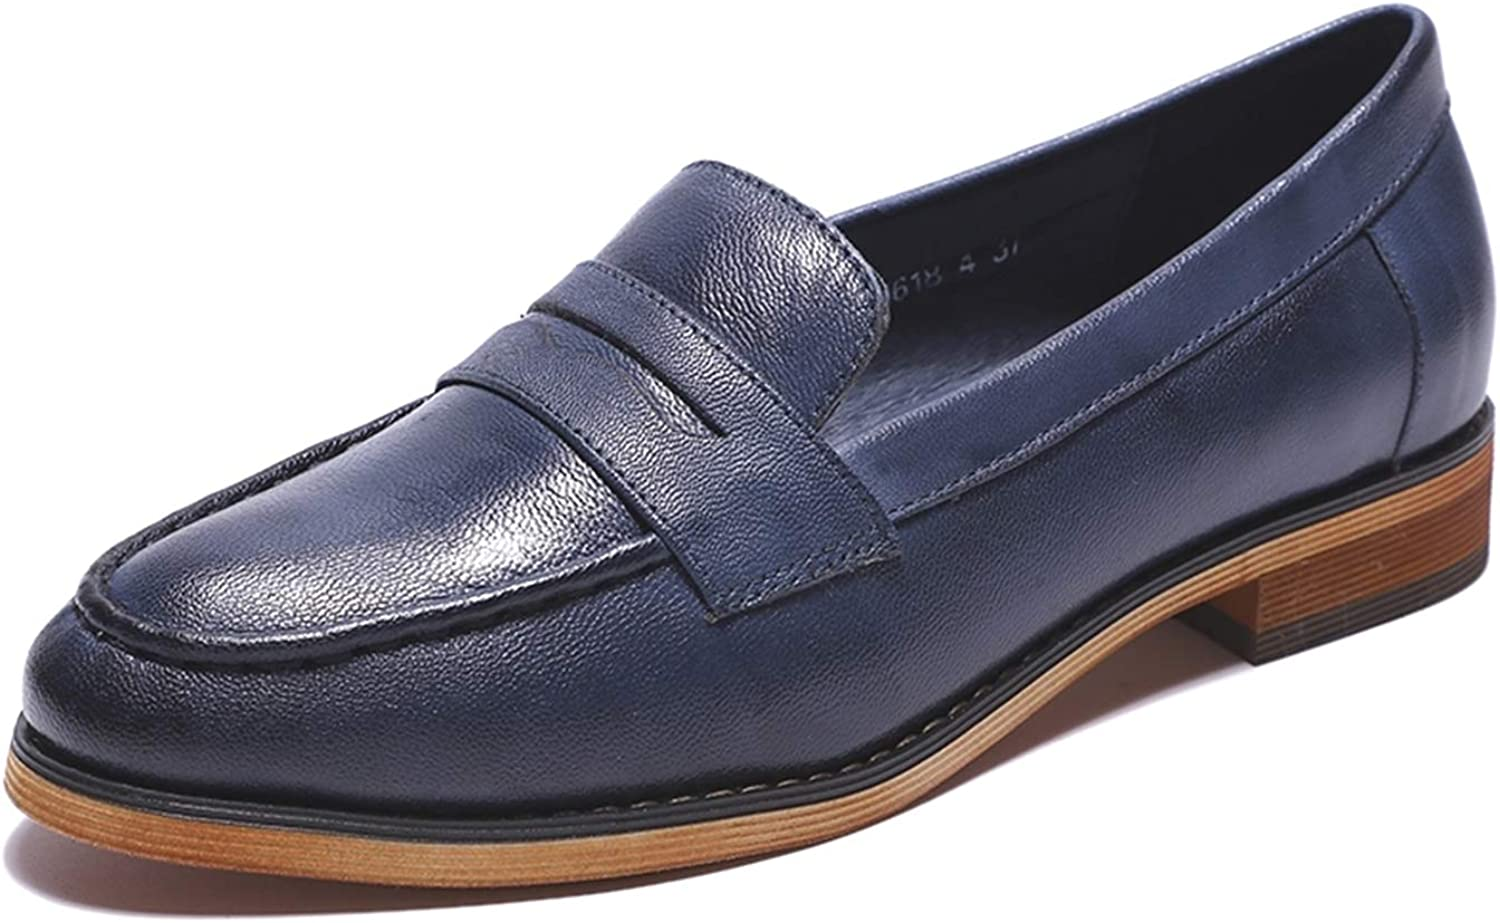 Mona flying Leather Slip on Penny Loafer Casual Flat shoes for Women Ladies Girls bluee